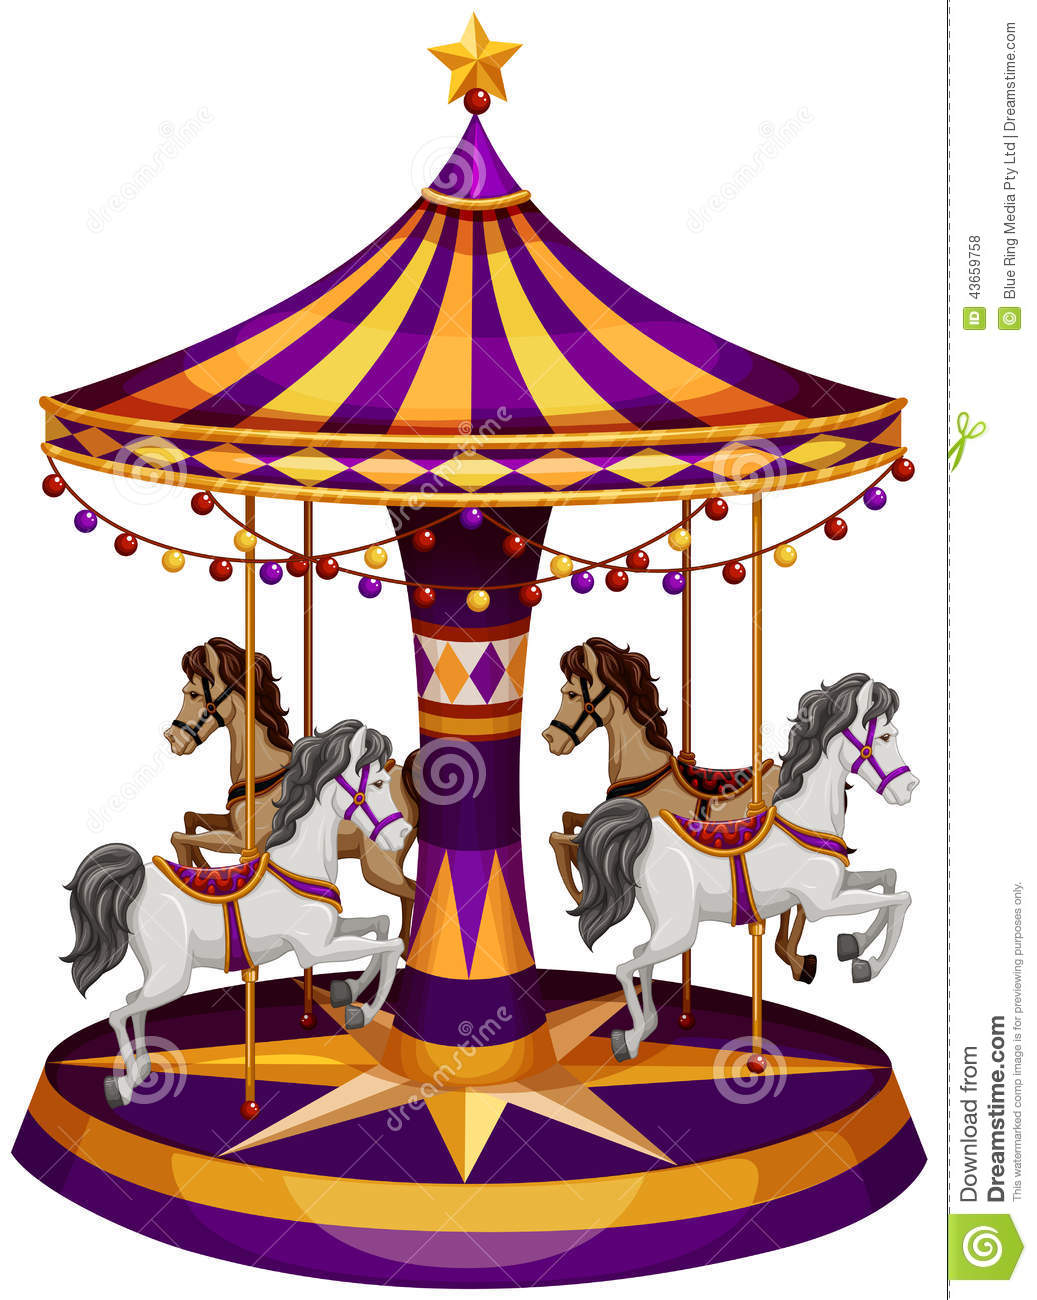 Illustration of a carrousel ride on a white background.